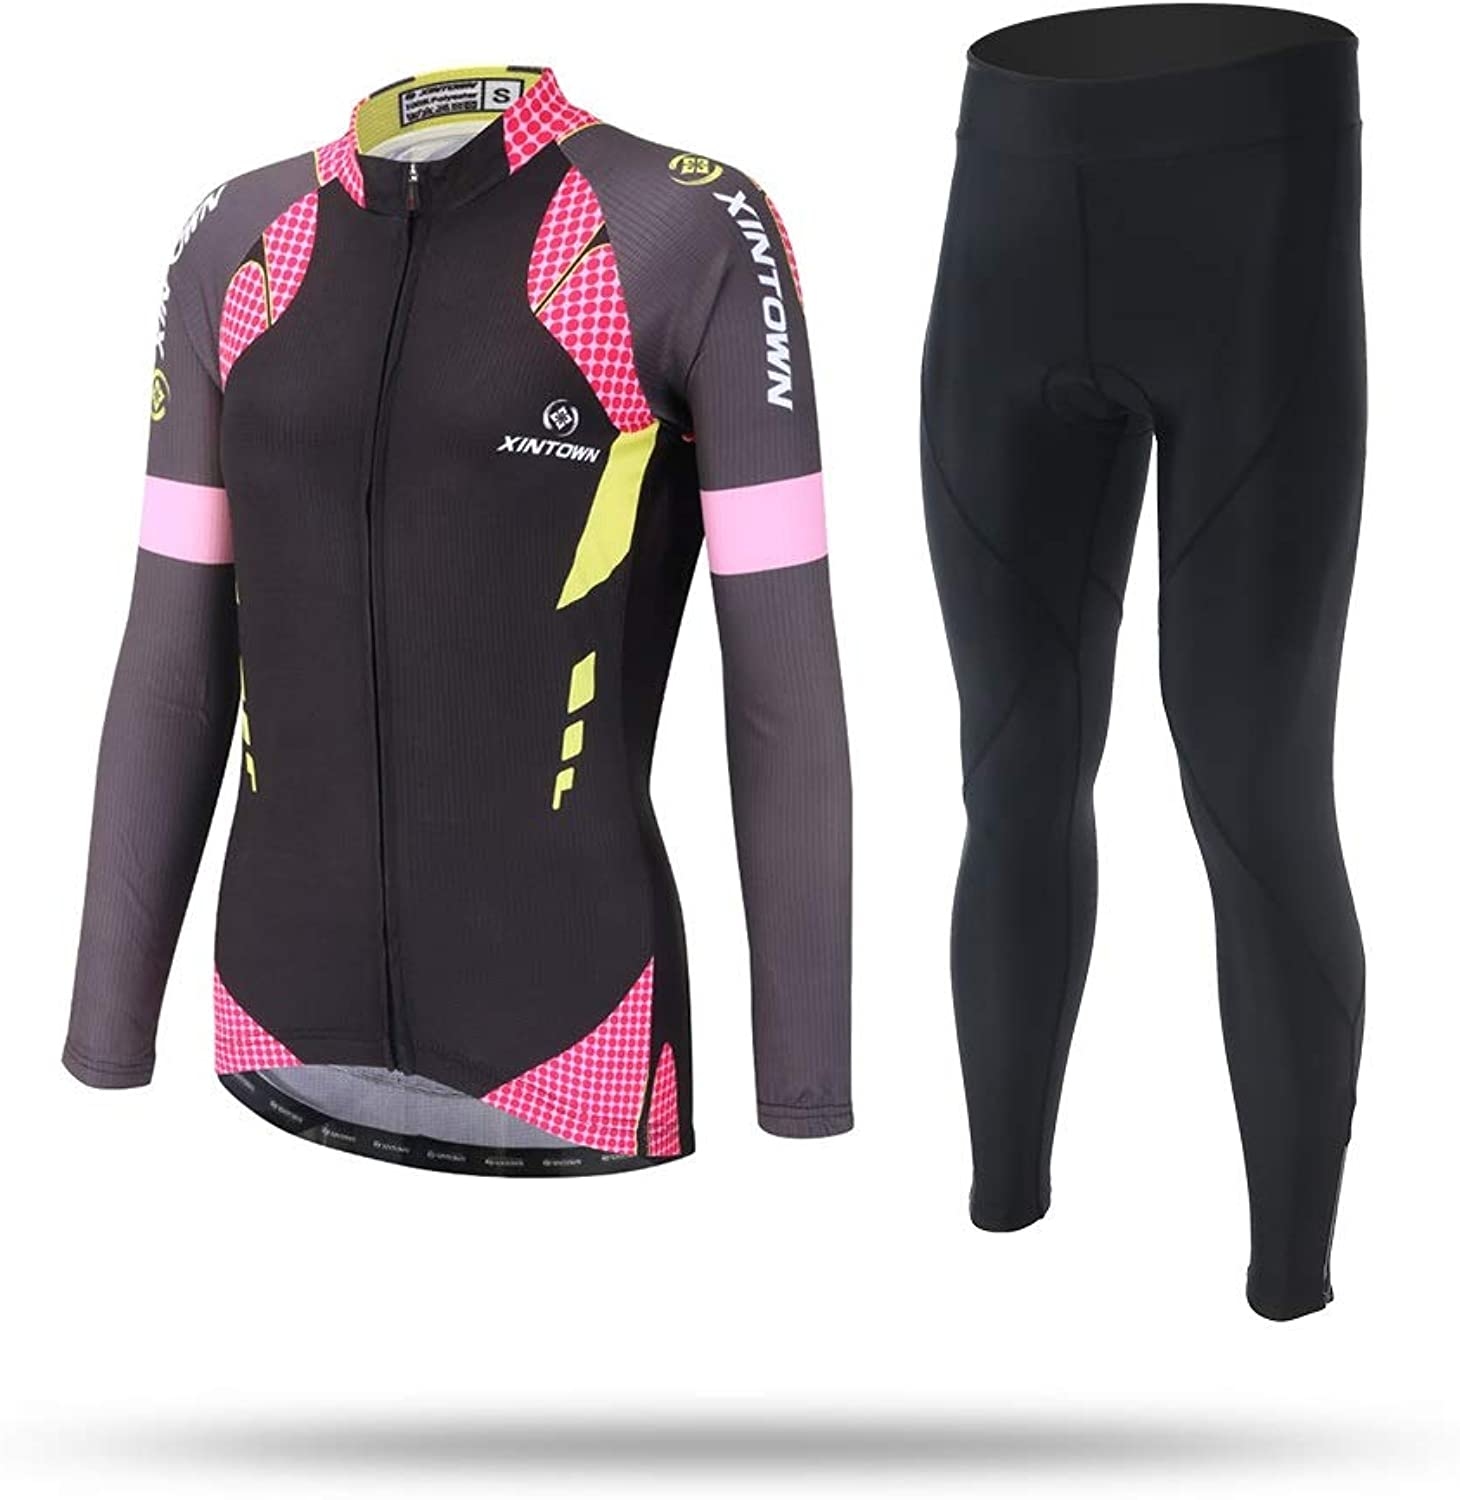 Women Cycling Jerseys Bike Shirts Lightweight Elastic Breathable TightFitting Maillot Sports Top MTB Spring Autumn Women Long Sleeve Cycling Jersey Clothing Pro Team Cycling Equipment